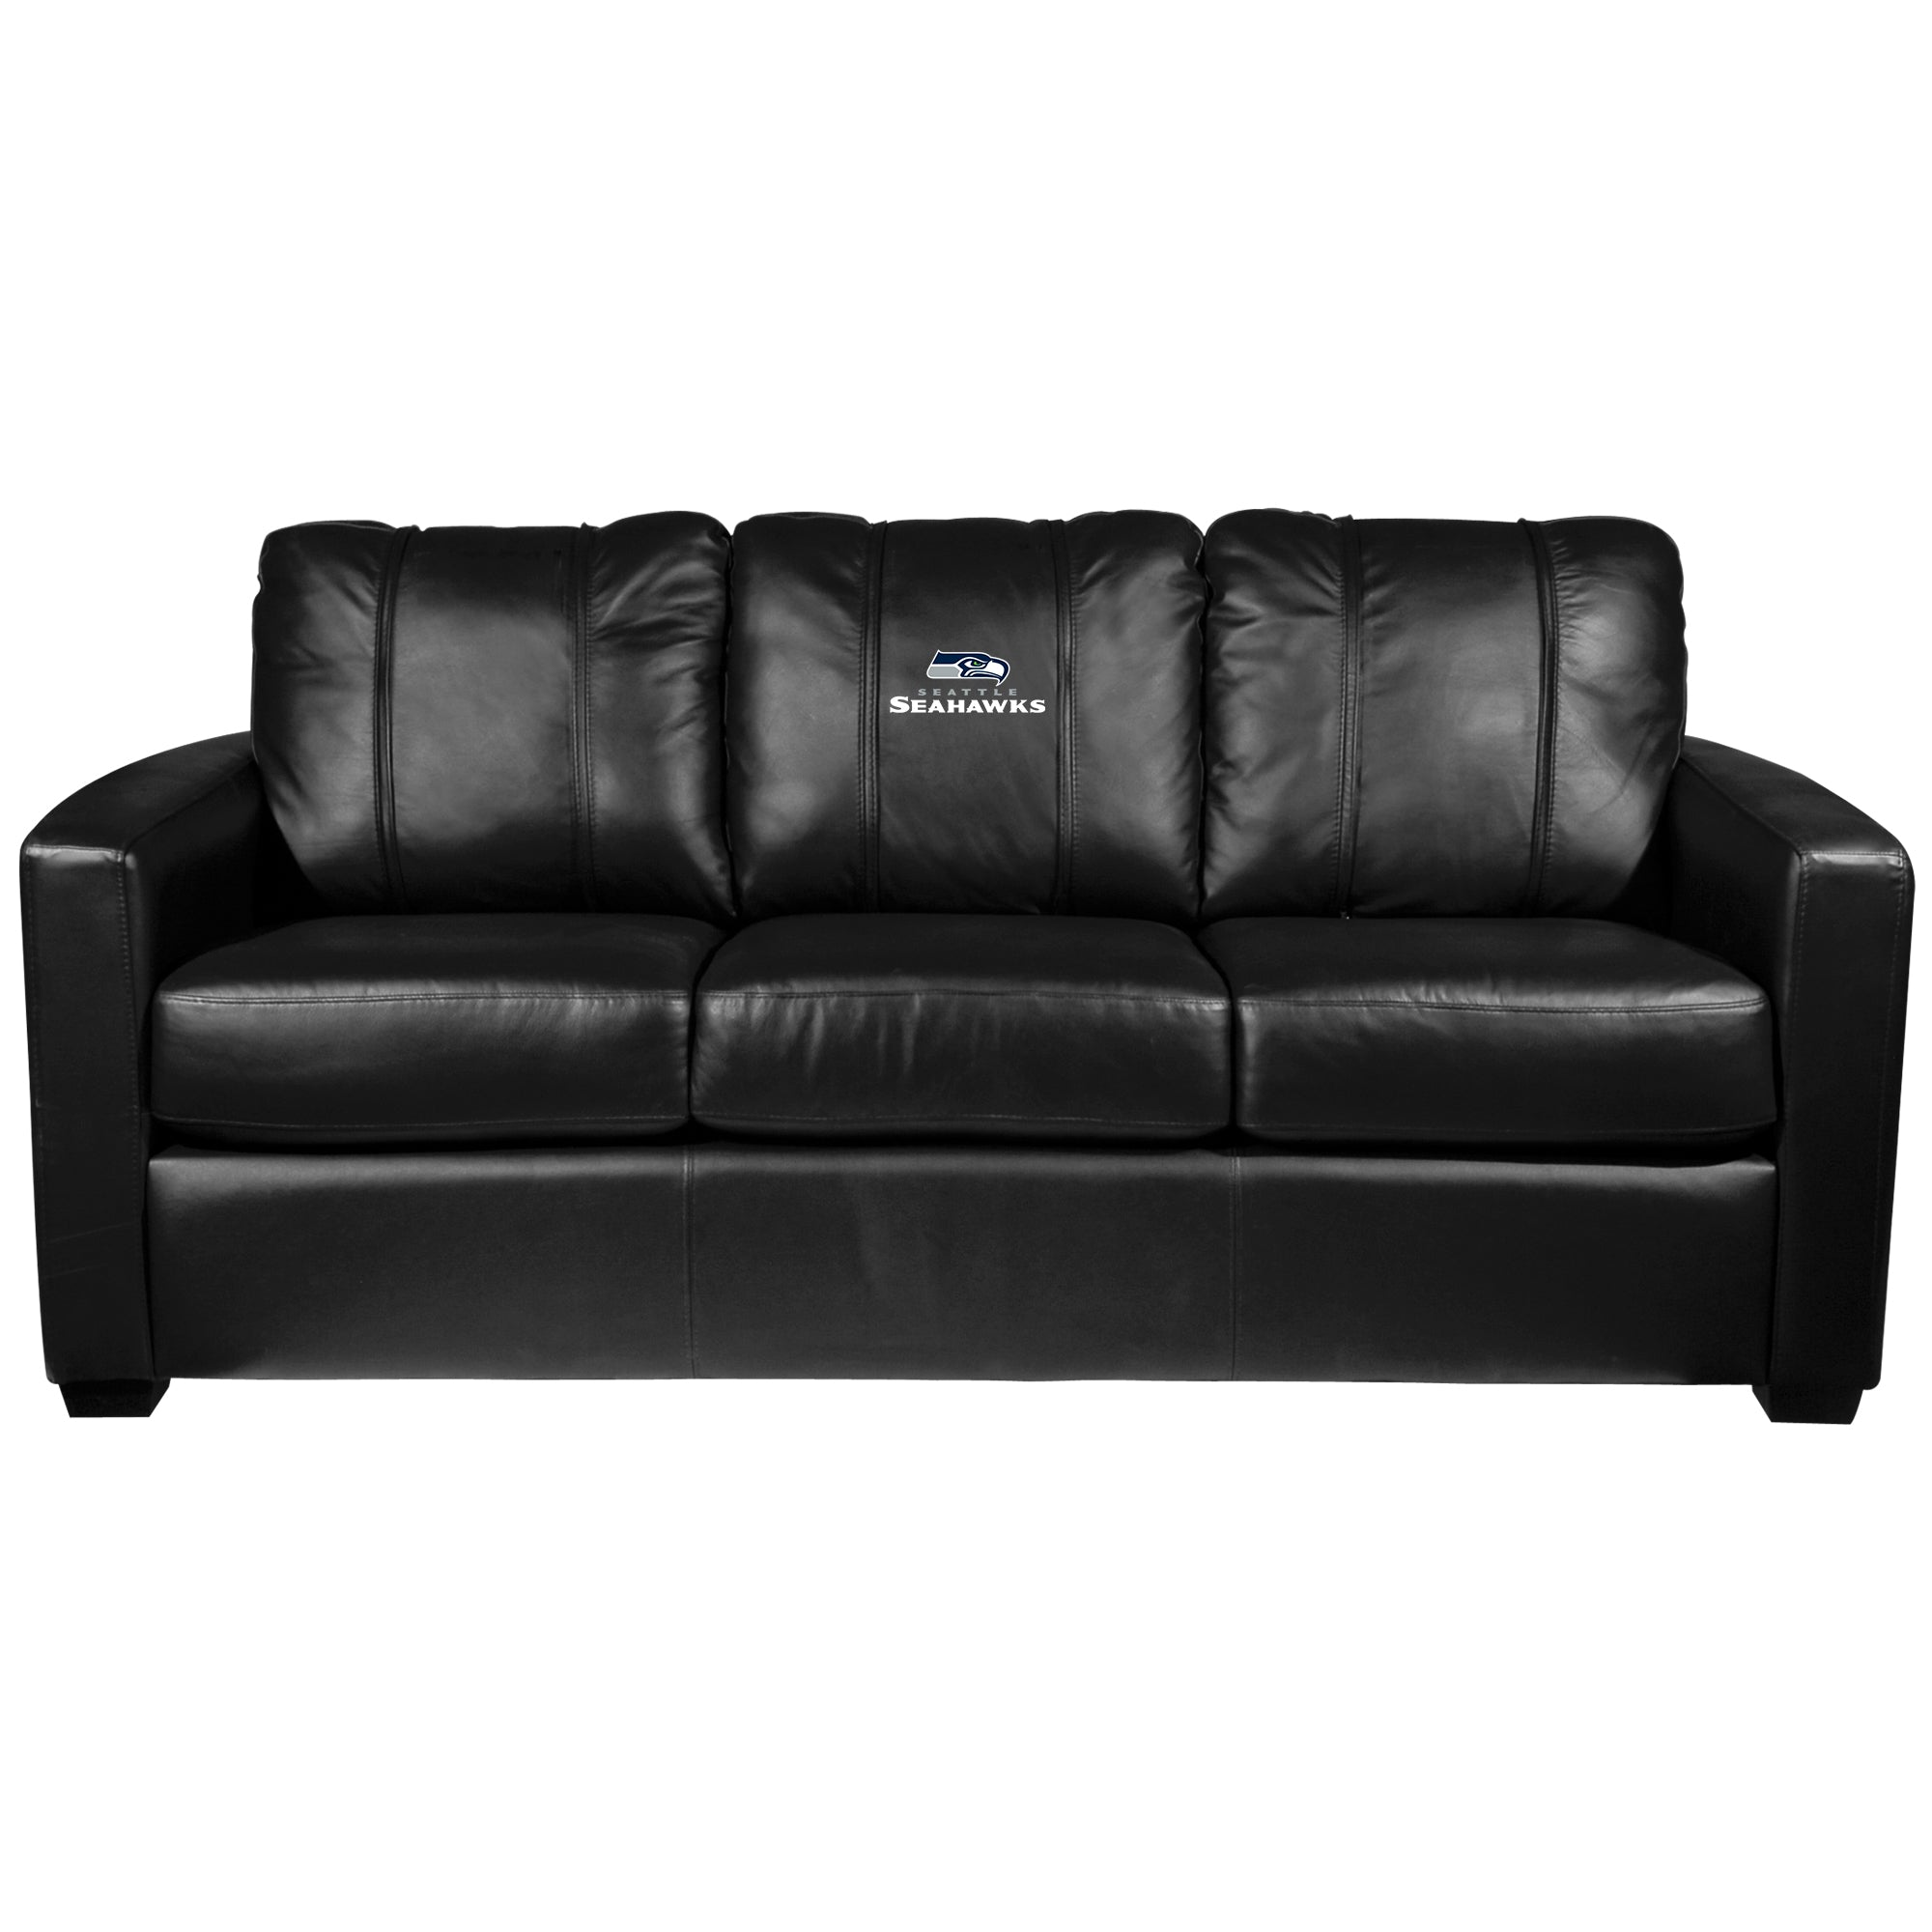 Silver Sofa with  Seattle Seahawks Secondary Logo